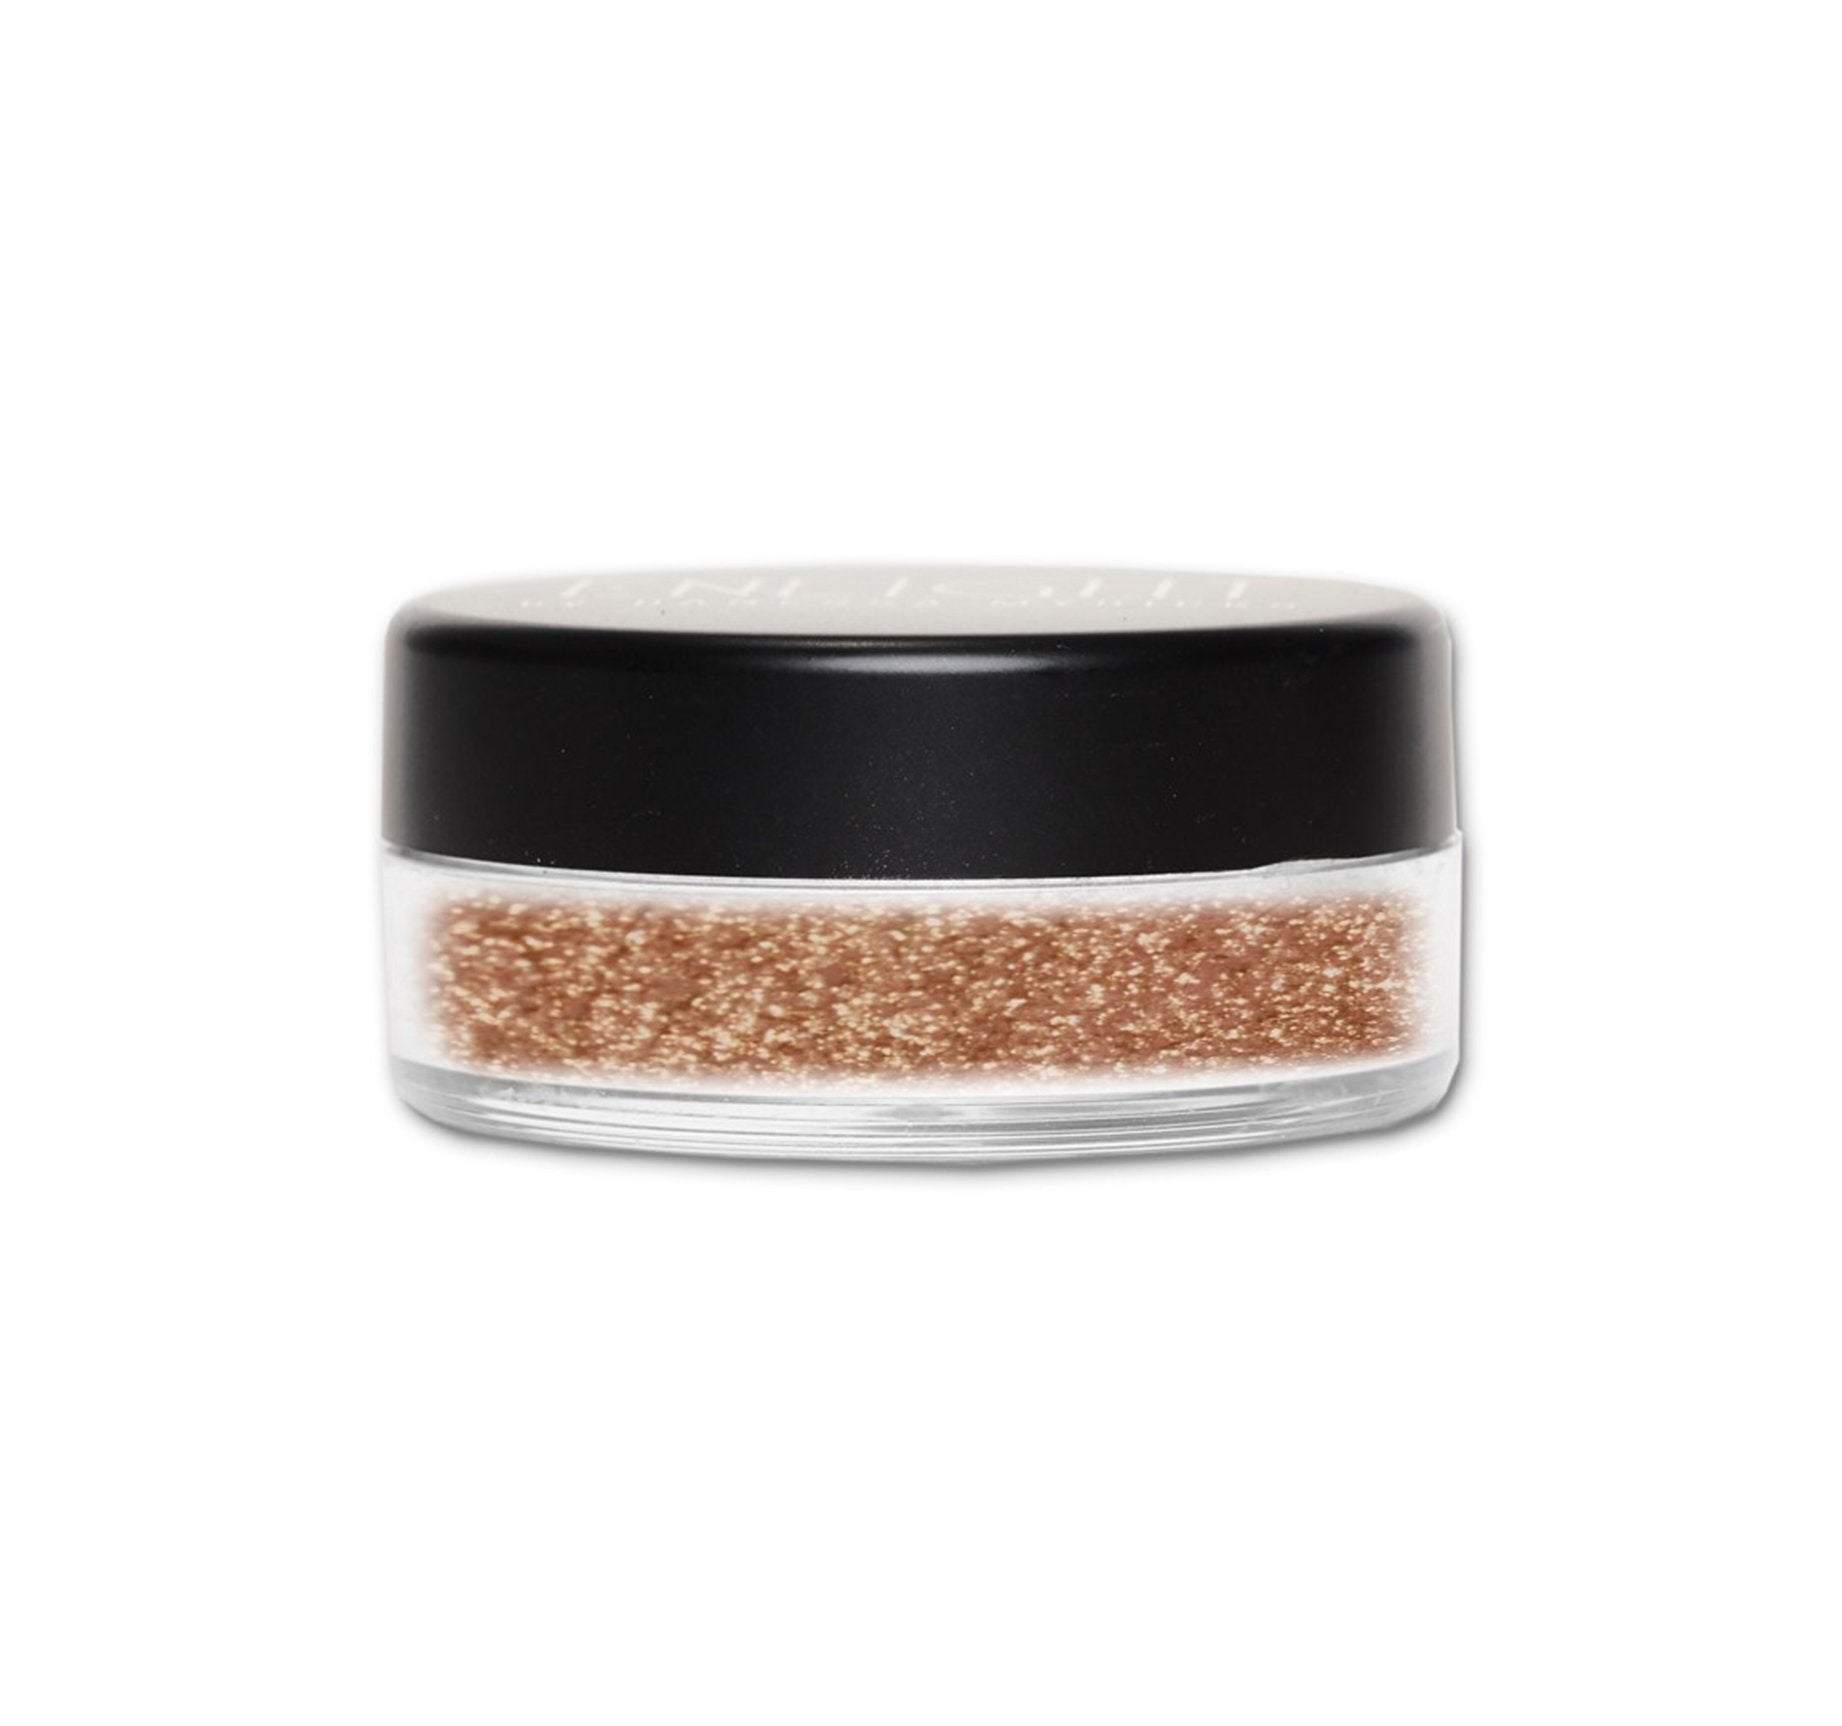 ENLIGHT HALO POWDER - HEAT, view larger image